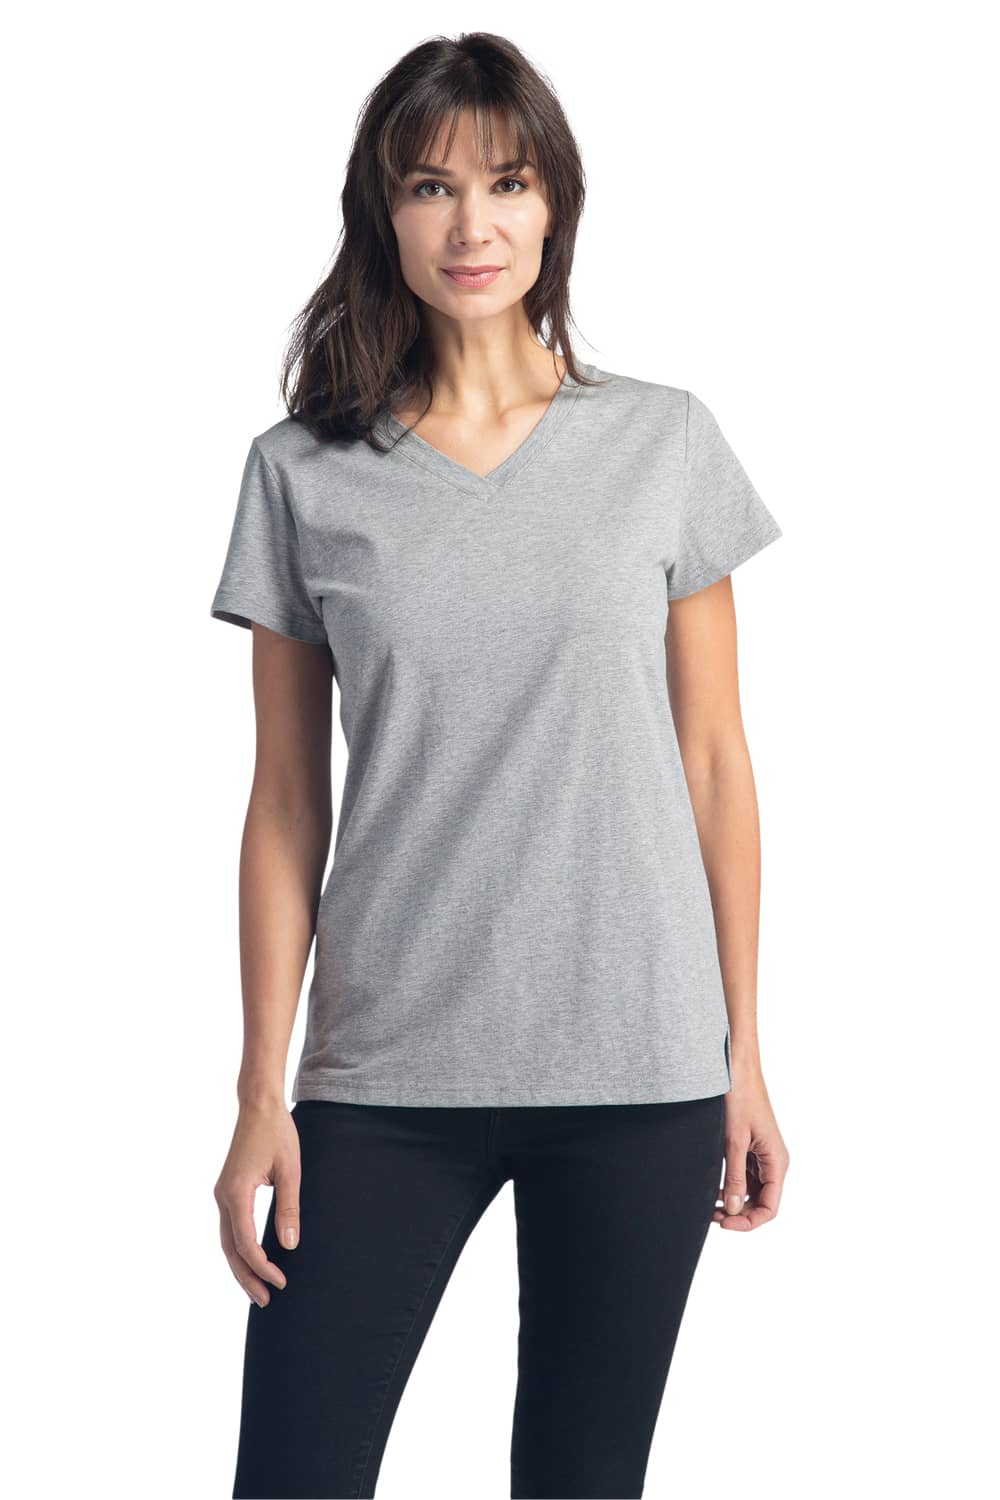 Women's Classic Fit EcoFabric™ V-Neck Tee